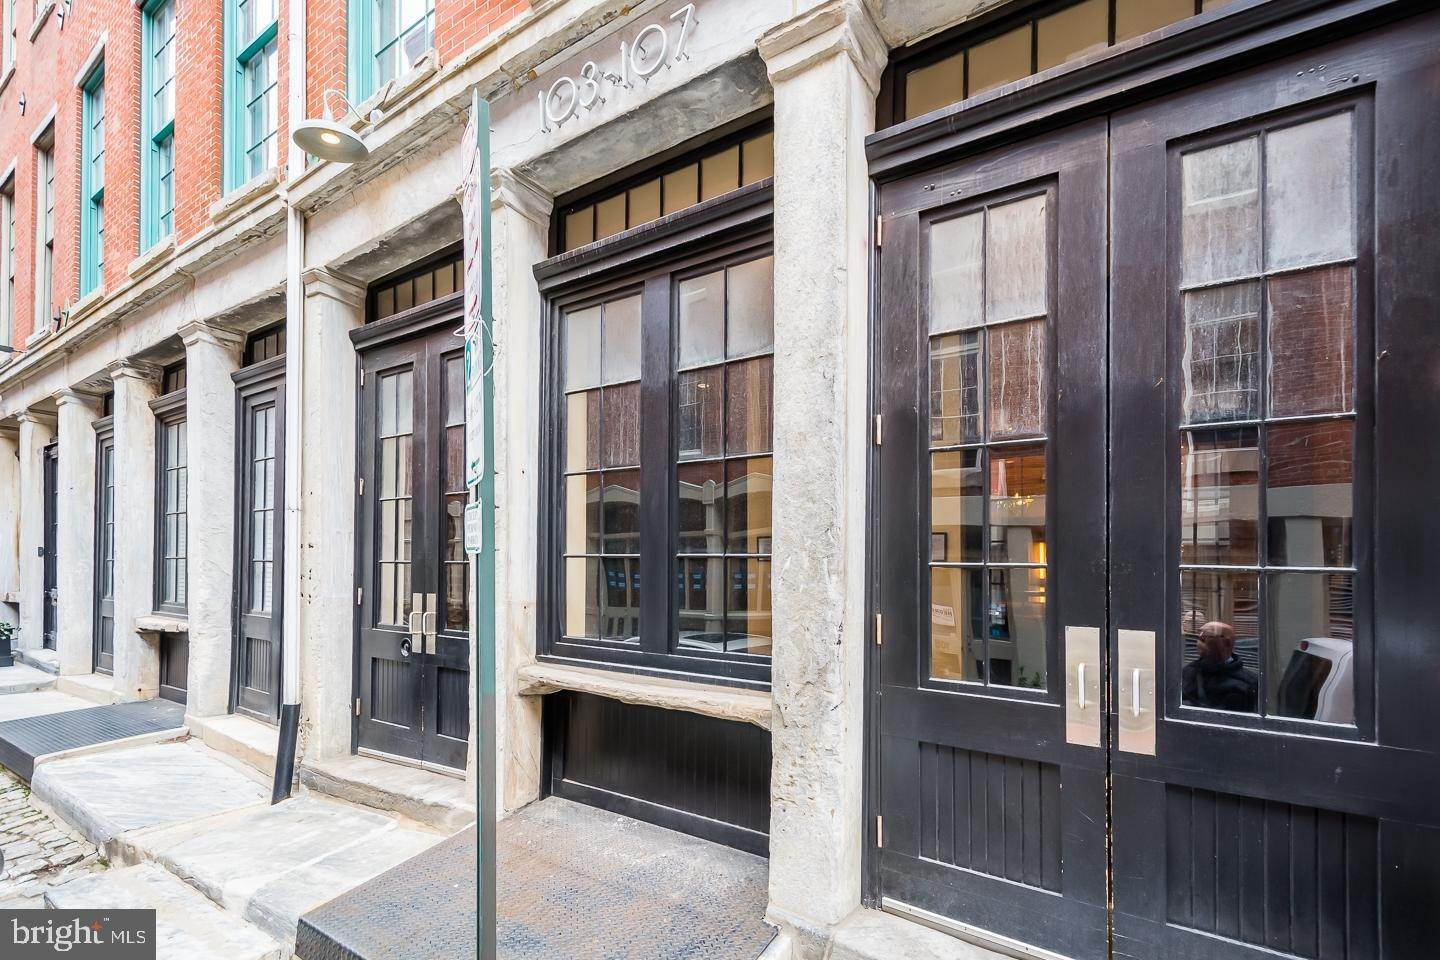 Property for Sale at 103-7 CHURCH ST #16 Philadelphia, Pennsylvania 19106 United States